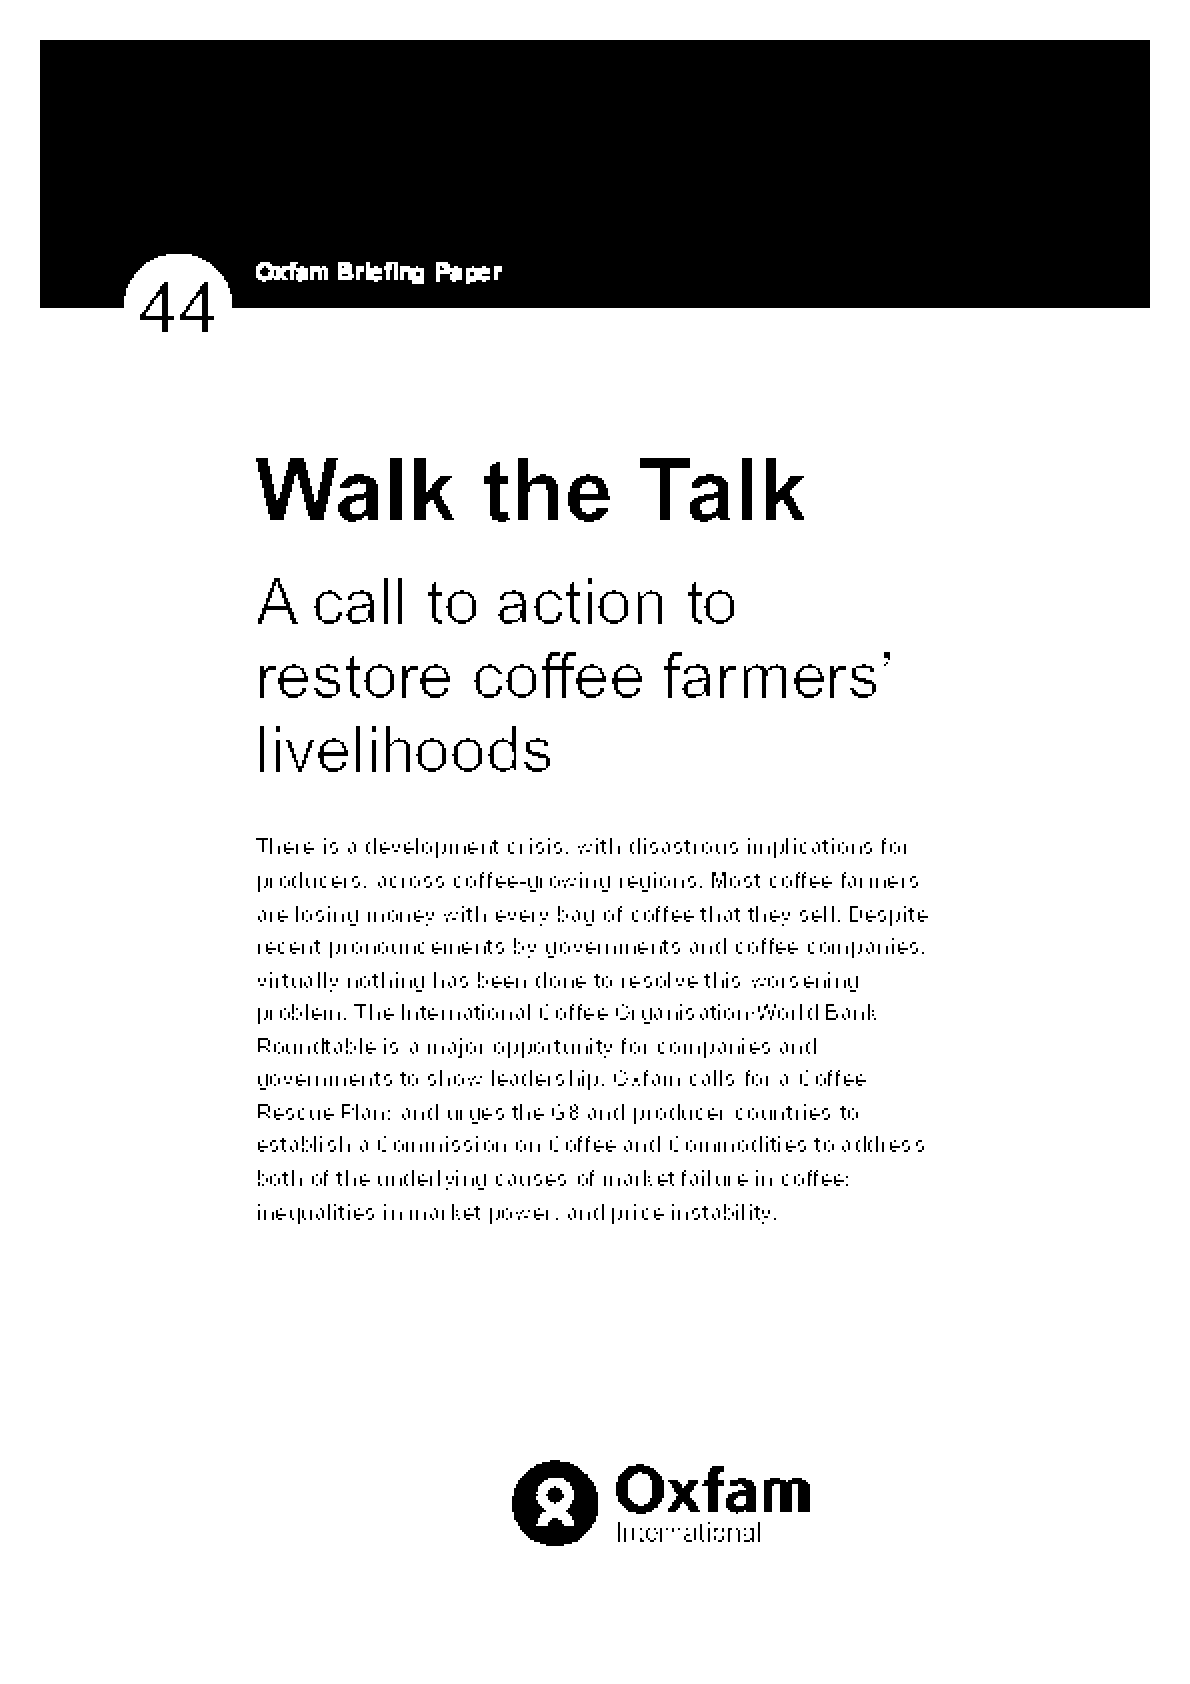 Walk the Talk: A call to action to restore coffee farmers' livelihoods